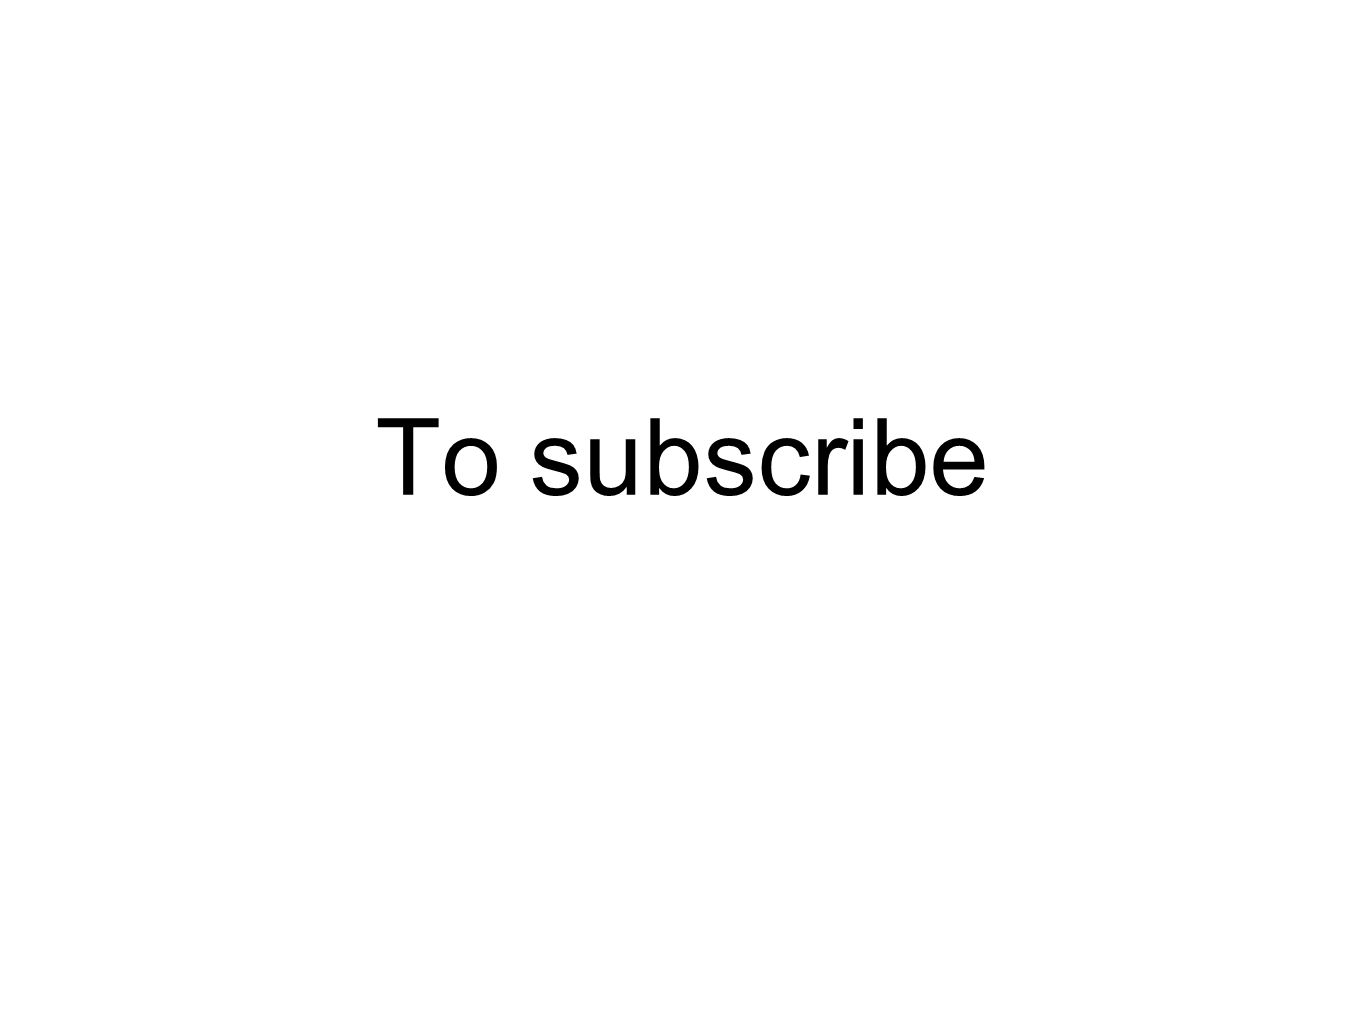 To subscribe